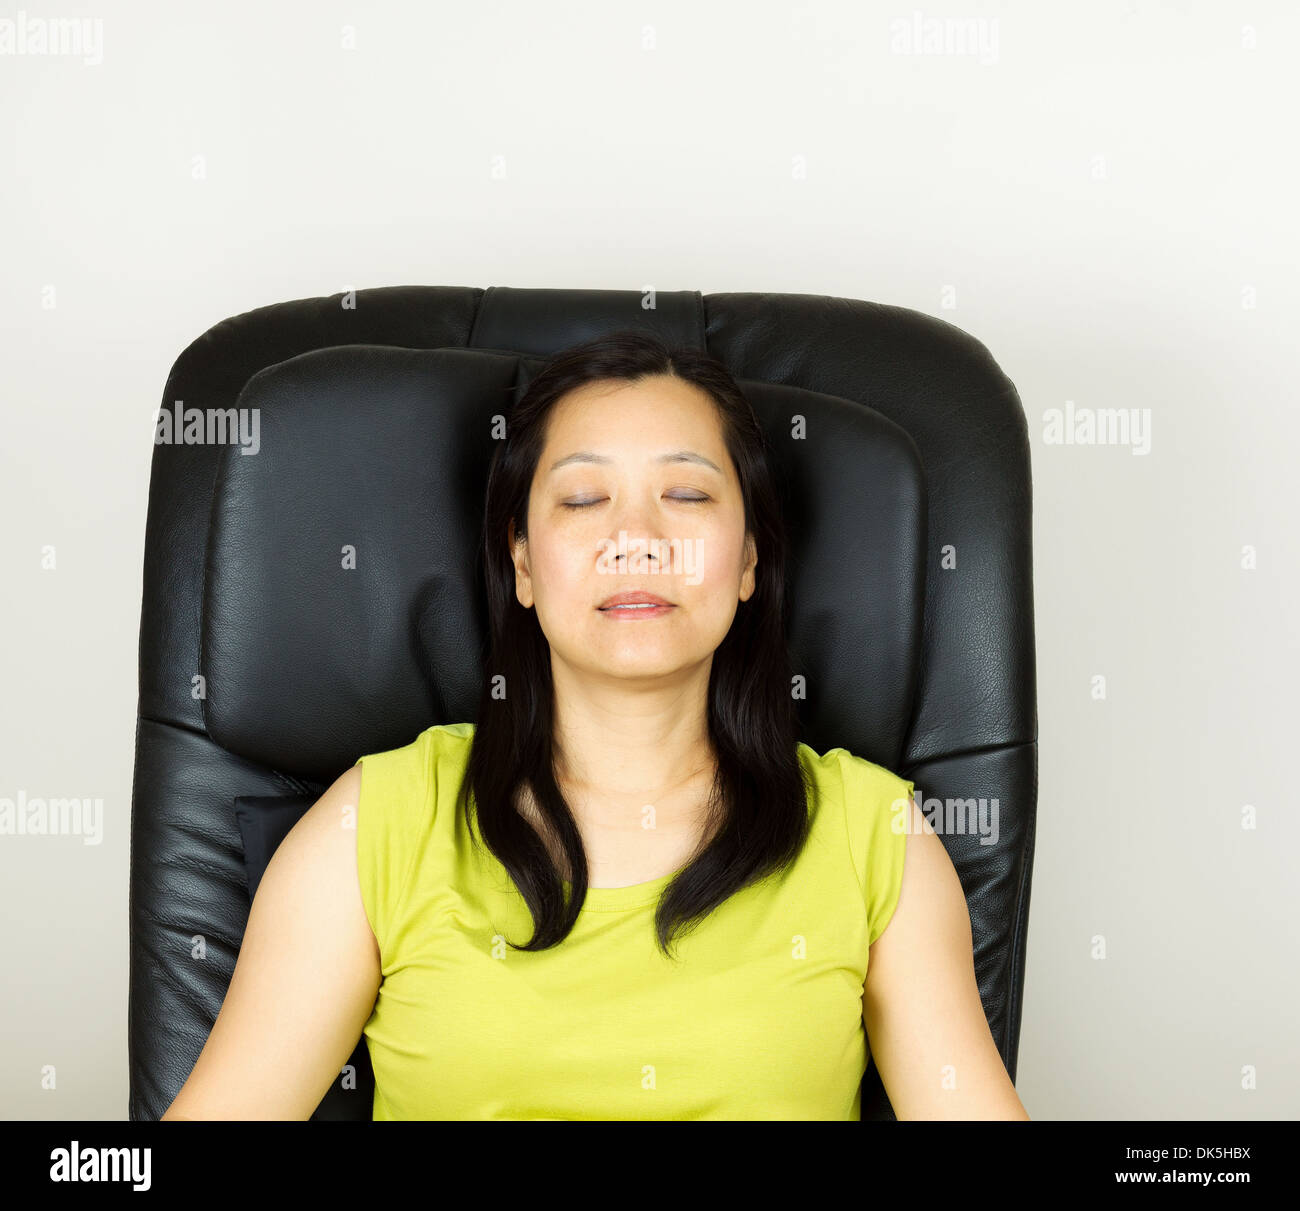 Photo Of Mature Woman Relaxing In Massage Chair Eyes Closed With Wall In Background